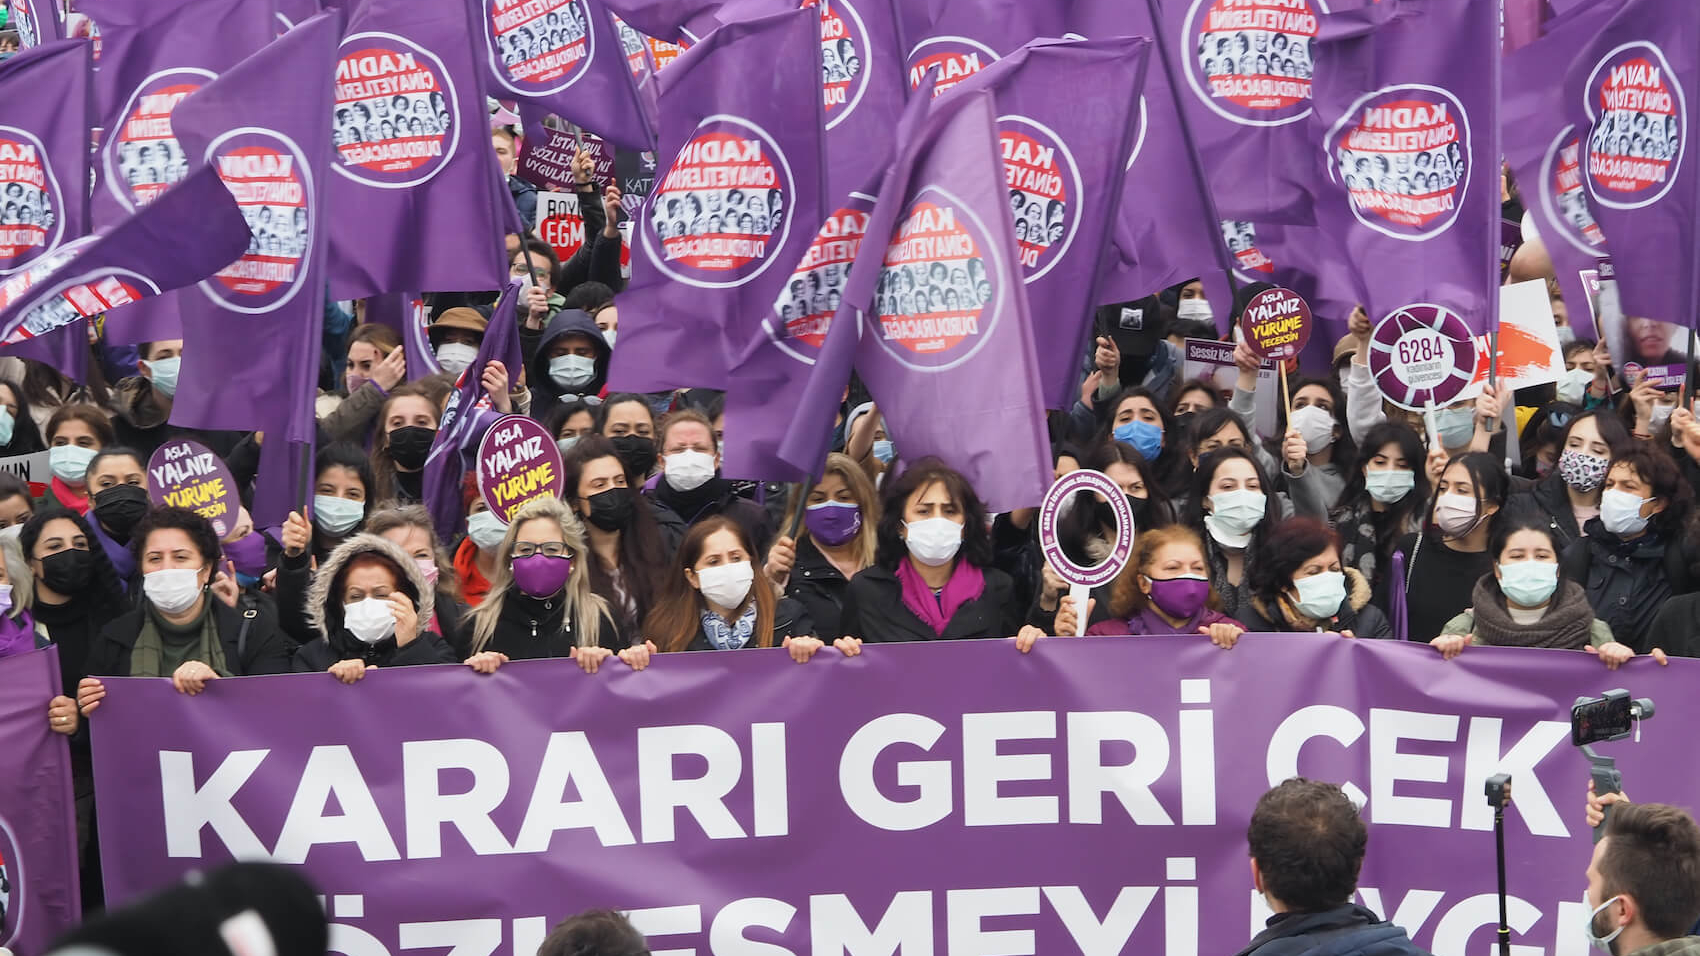 Women protest the decision taken by Turkish President Recep Tayyip Erdogan to withdraw the country from the Istanbul Convention in Kadıkoy/Istanbul, Turkey on March 20, 2021. Photo: Gokce Atik.